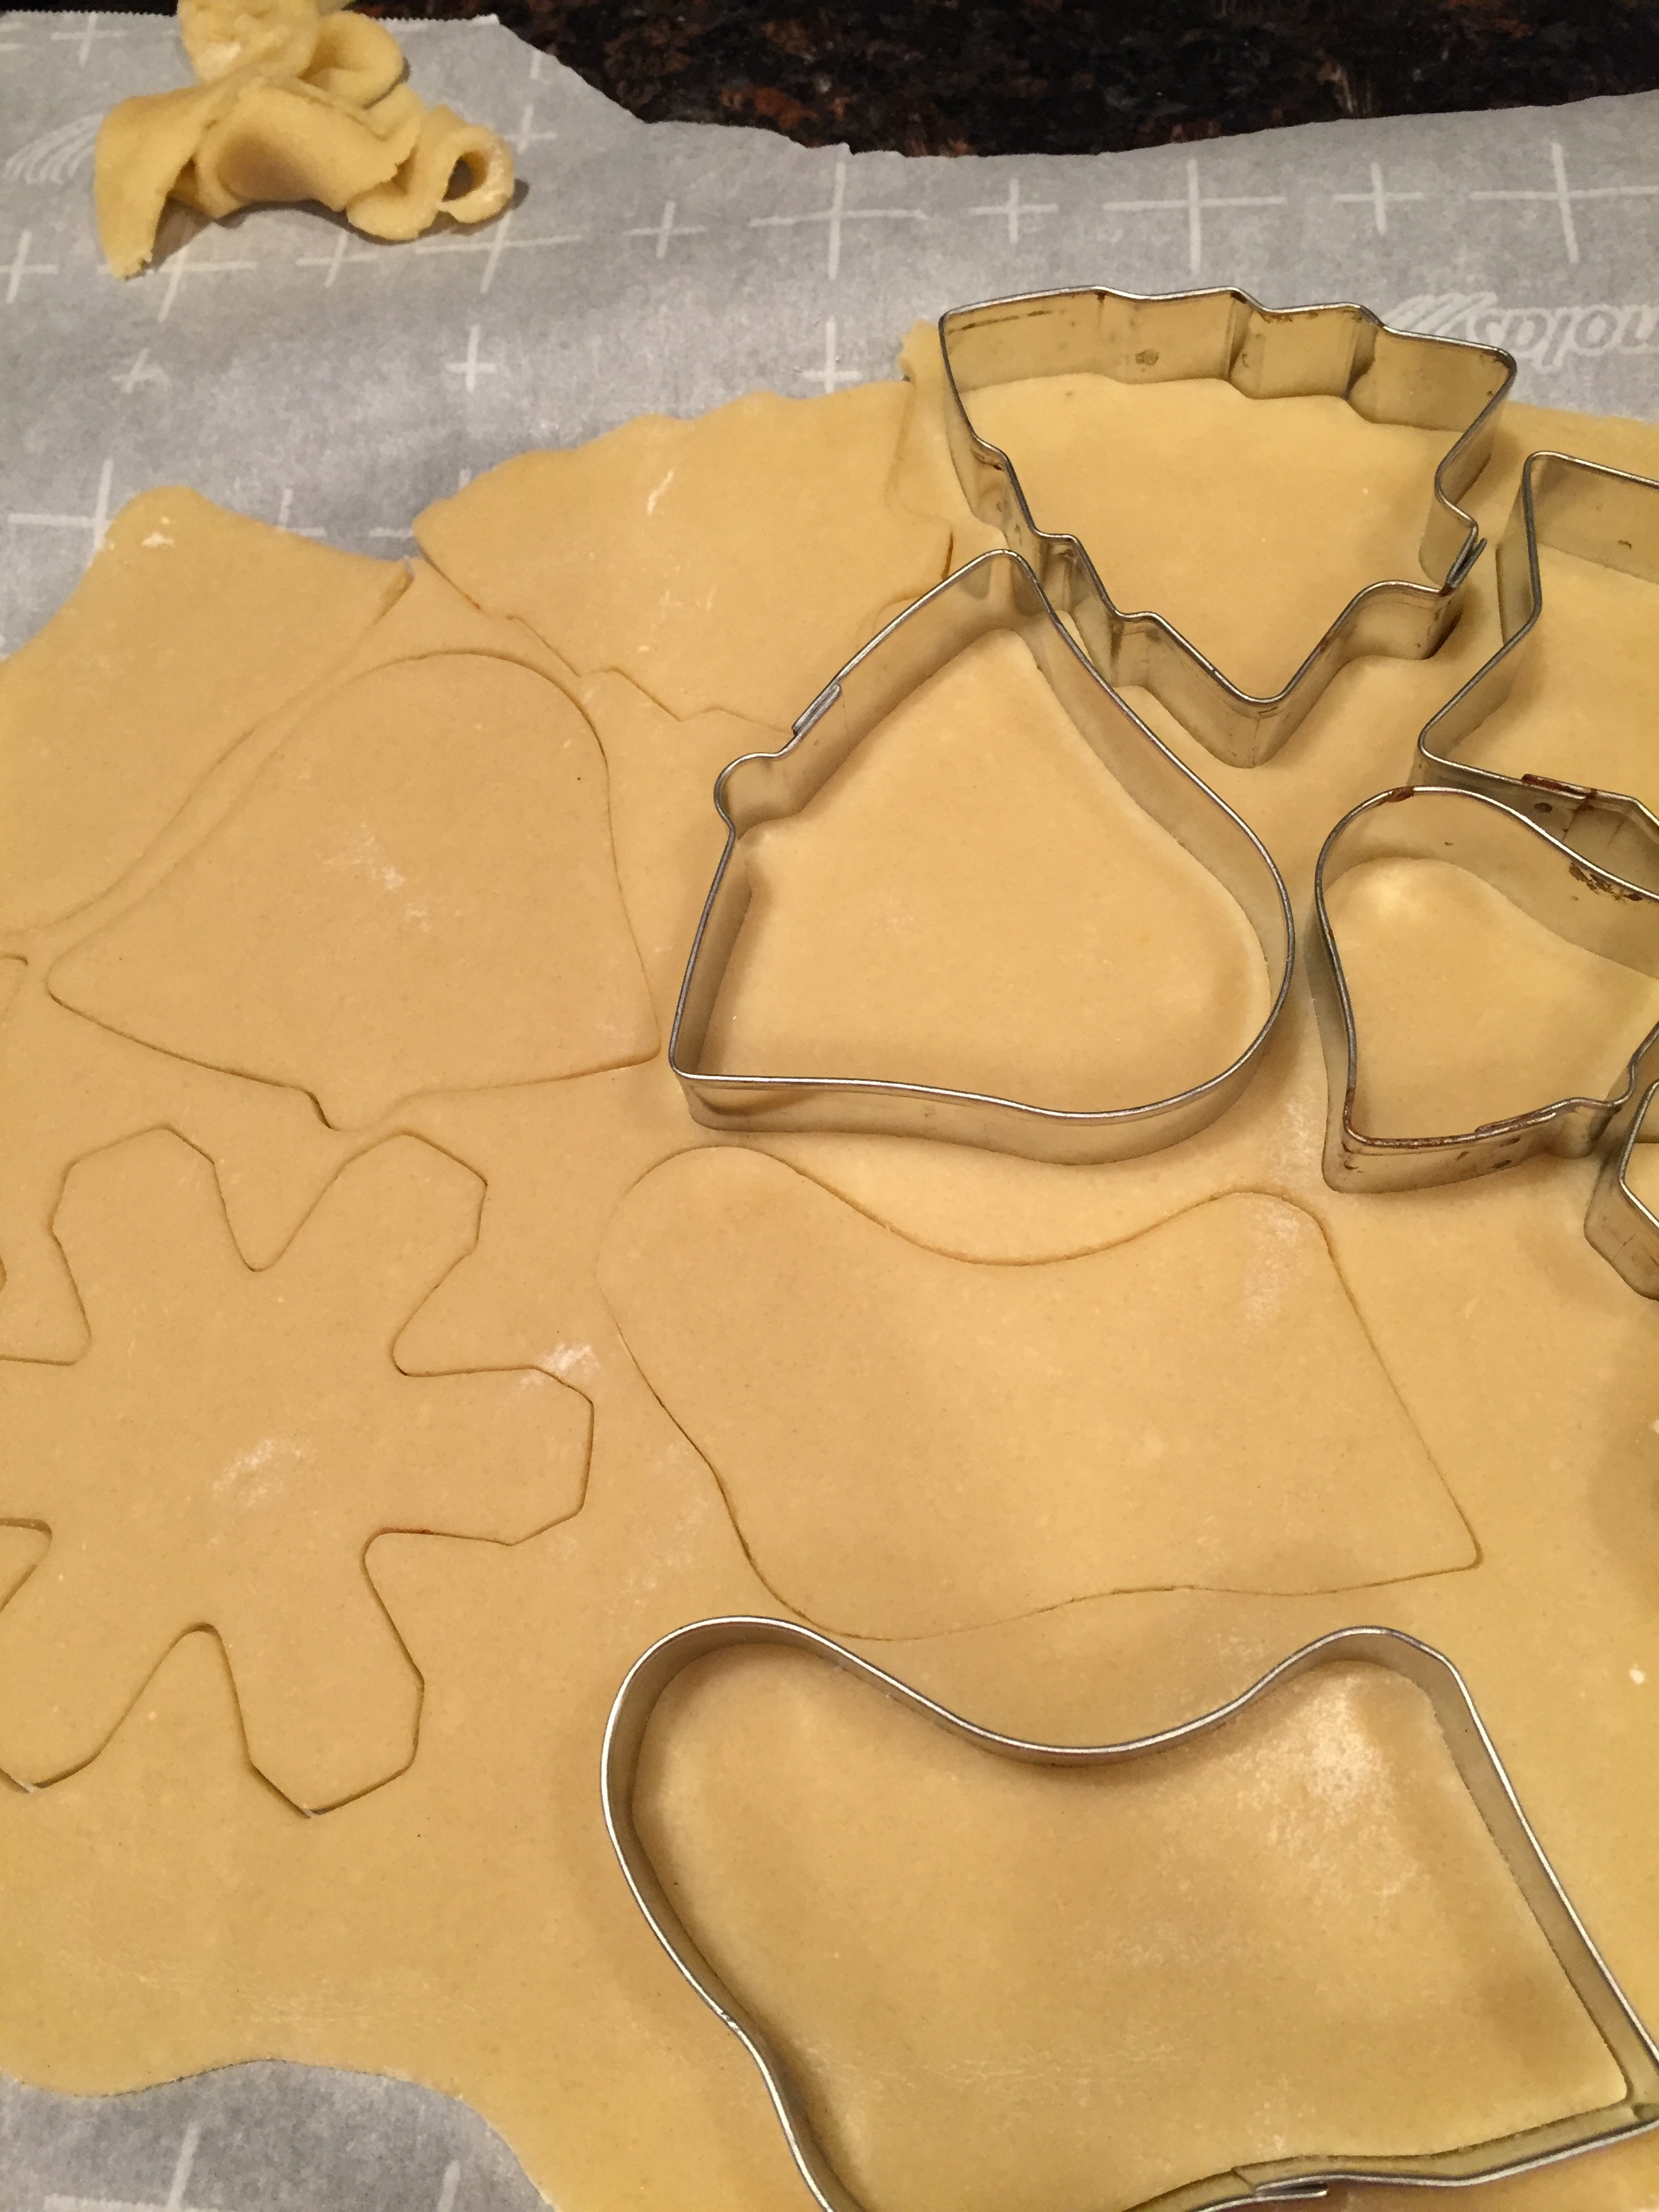 sugar cookie recipe 2